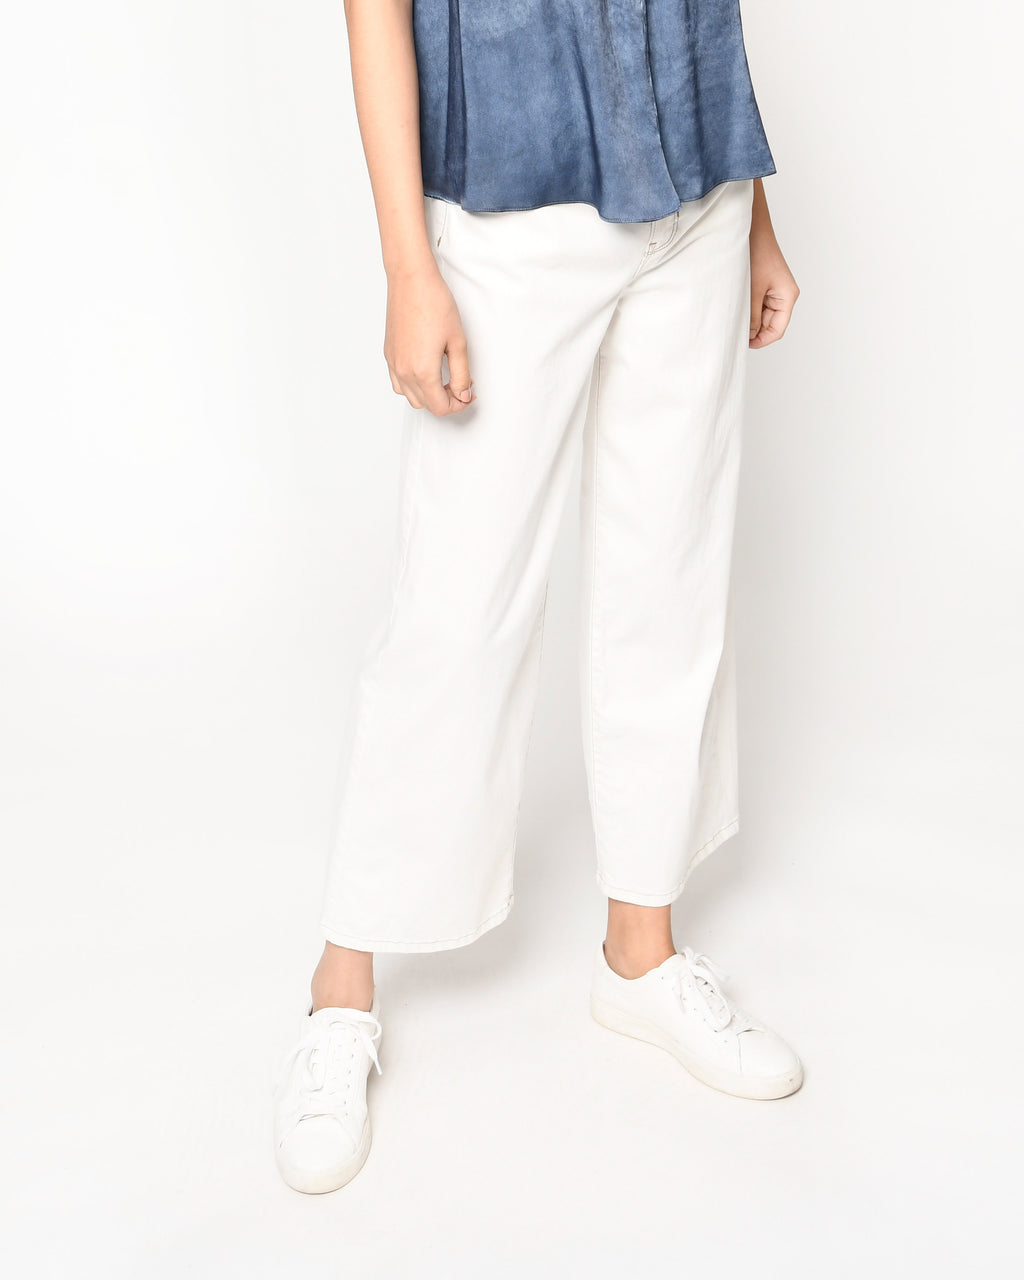 CP18407 - SOLID WIDE LEG JEANS - bottoms - denim - Our solid wide leg jeans are perfect for pairing with any top from our Resort 2021 collection. Crafted from soft cotton, these stretchy jeans will be on repeat all season long. Add 1 line break Stylist Tip: pair with one of our flowy blouses for an on trend ensemble.